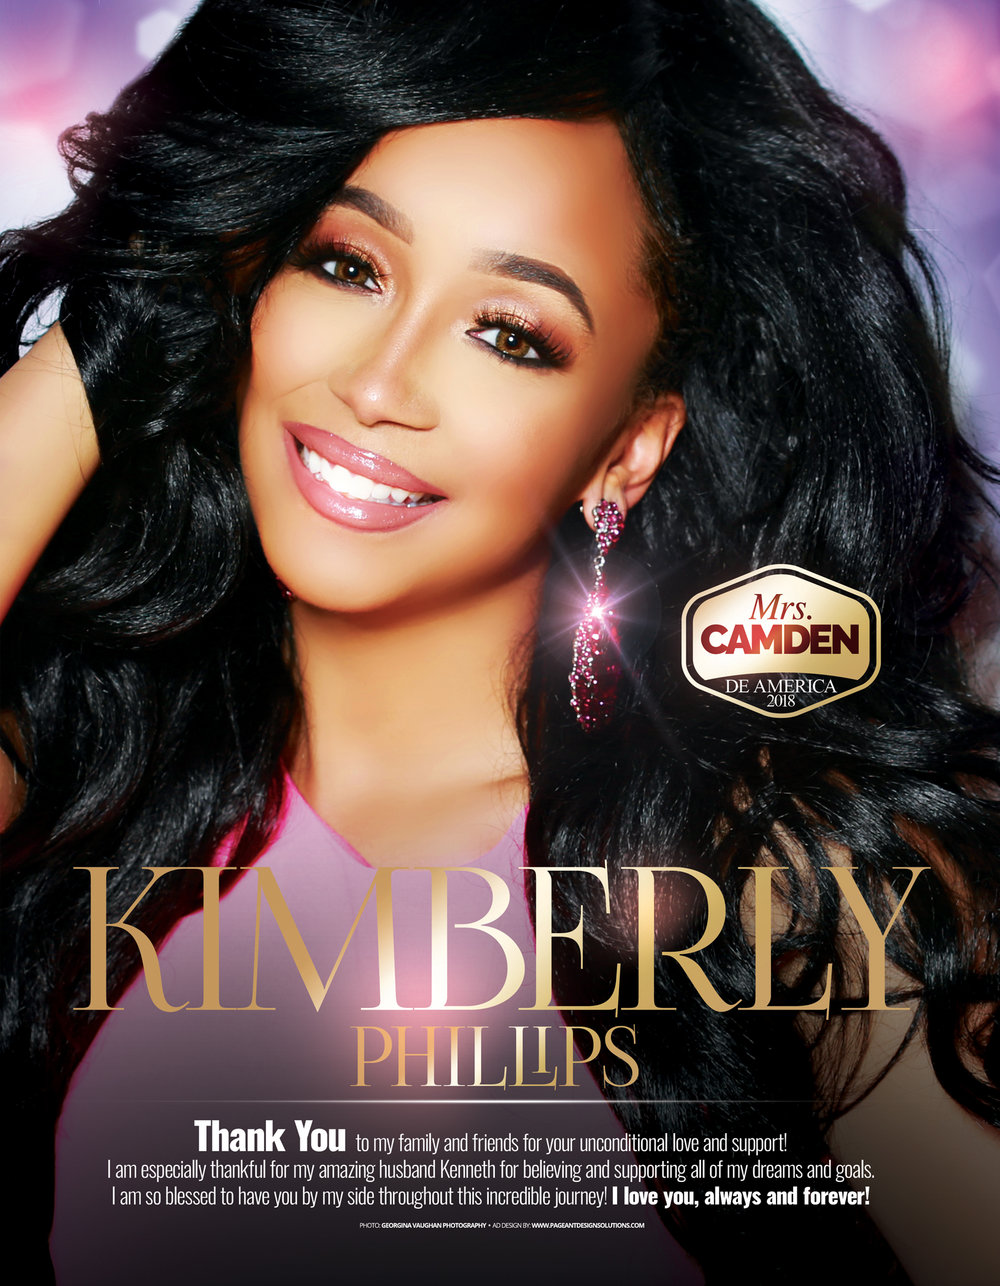 Phillips, Kimberly AD 300dpi.jpg